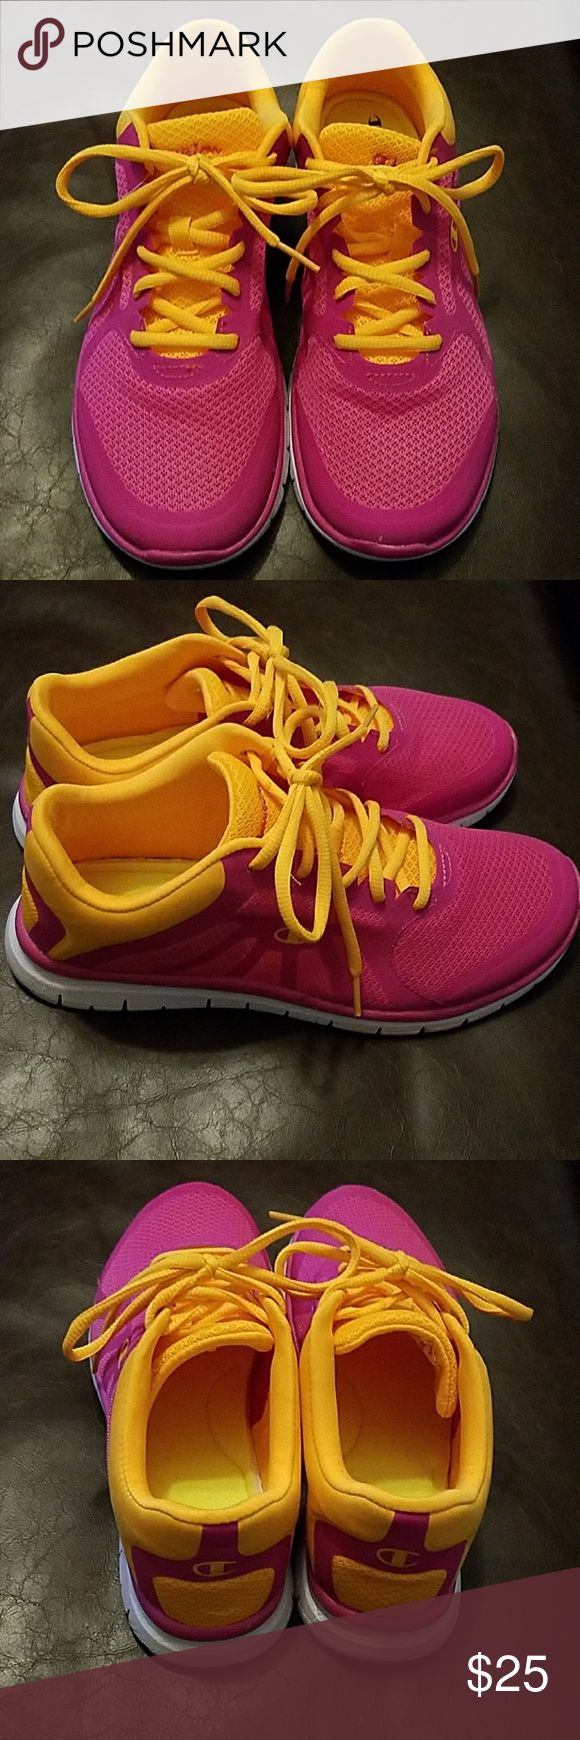 EUC Champion Pink & Orange Memory Foam Sneakers Pretty in pink super light weight breathable sneakers with memory foam soles! Feel free to make a reasonable offer or bundle for a discount! Champion Shoes Athletic Shoes